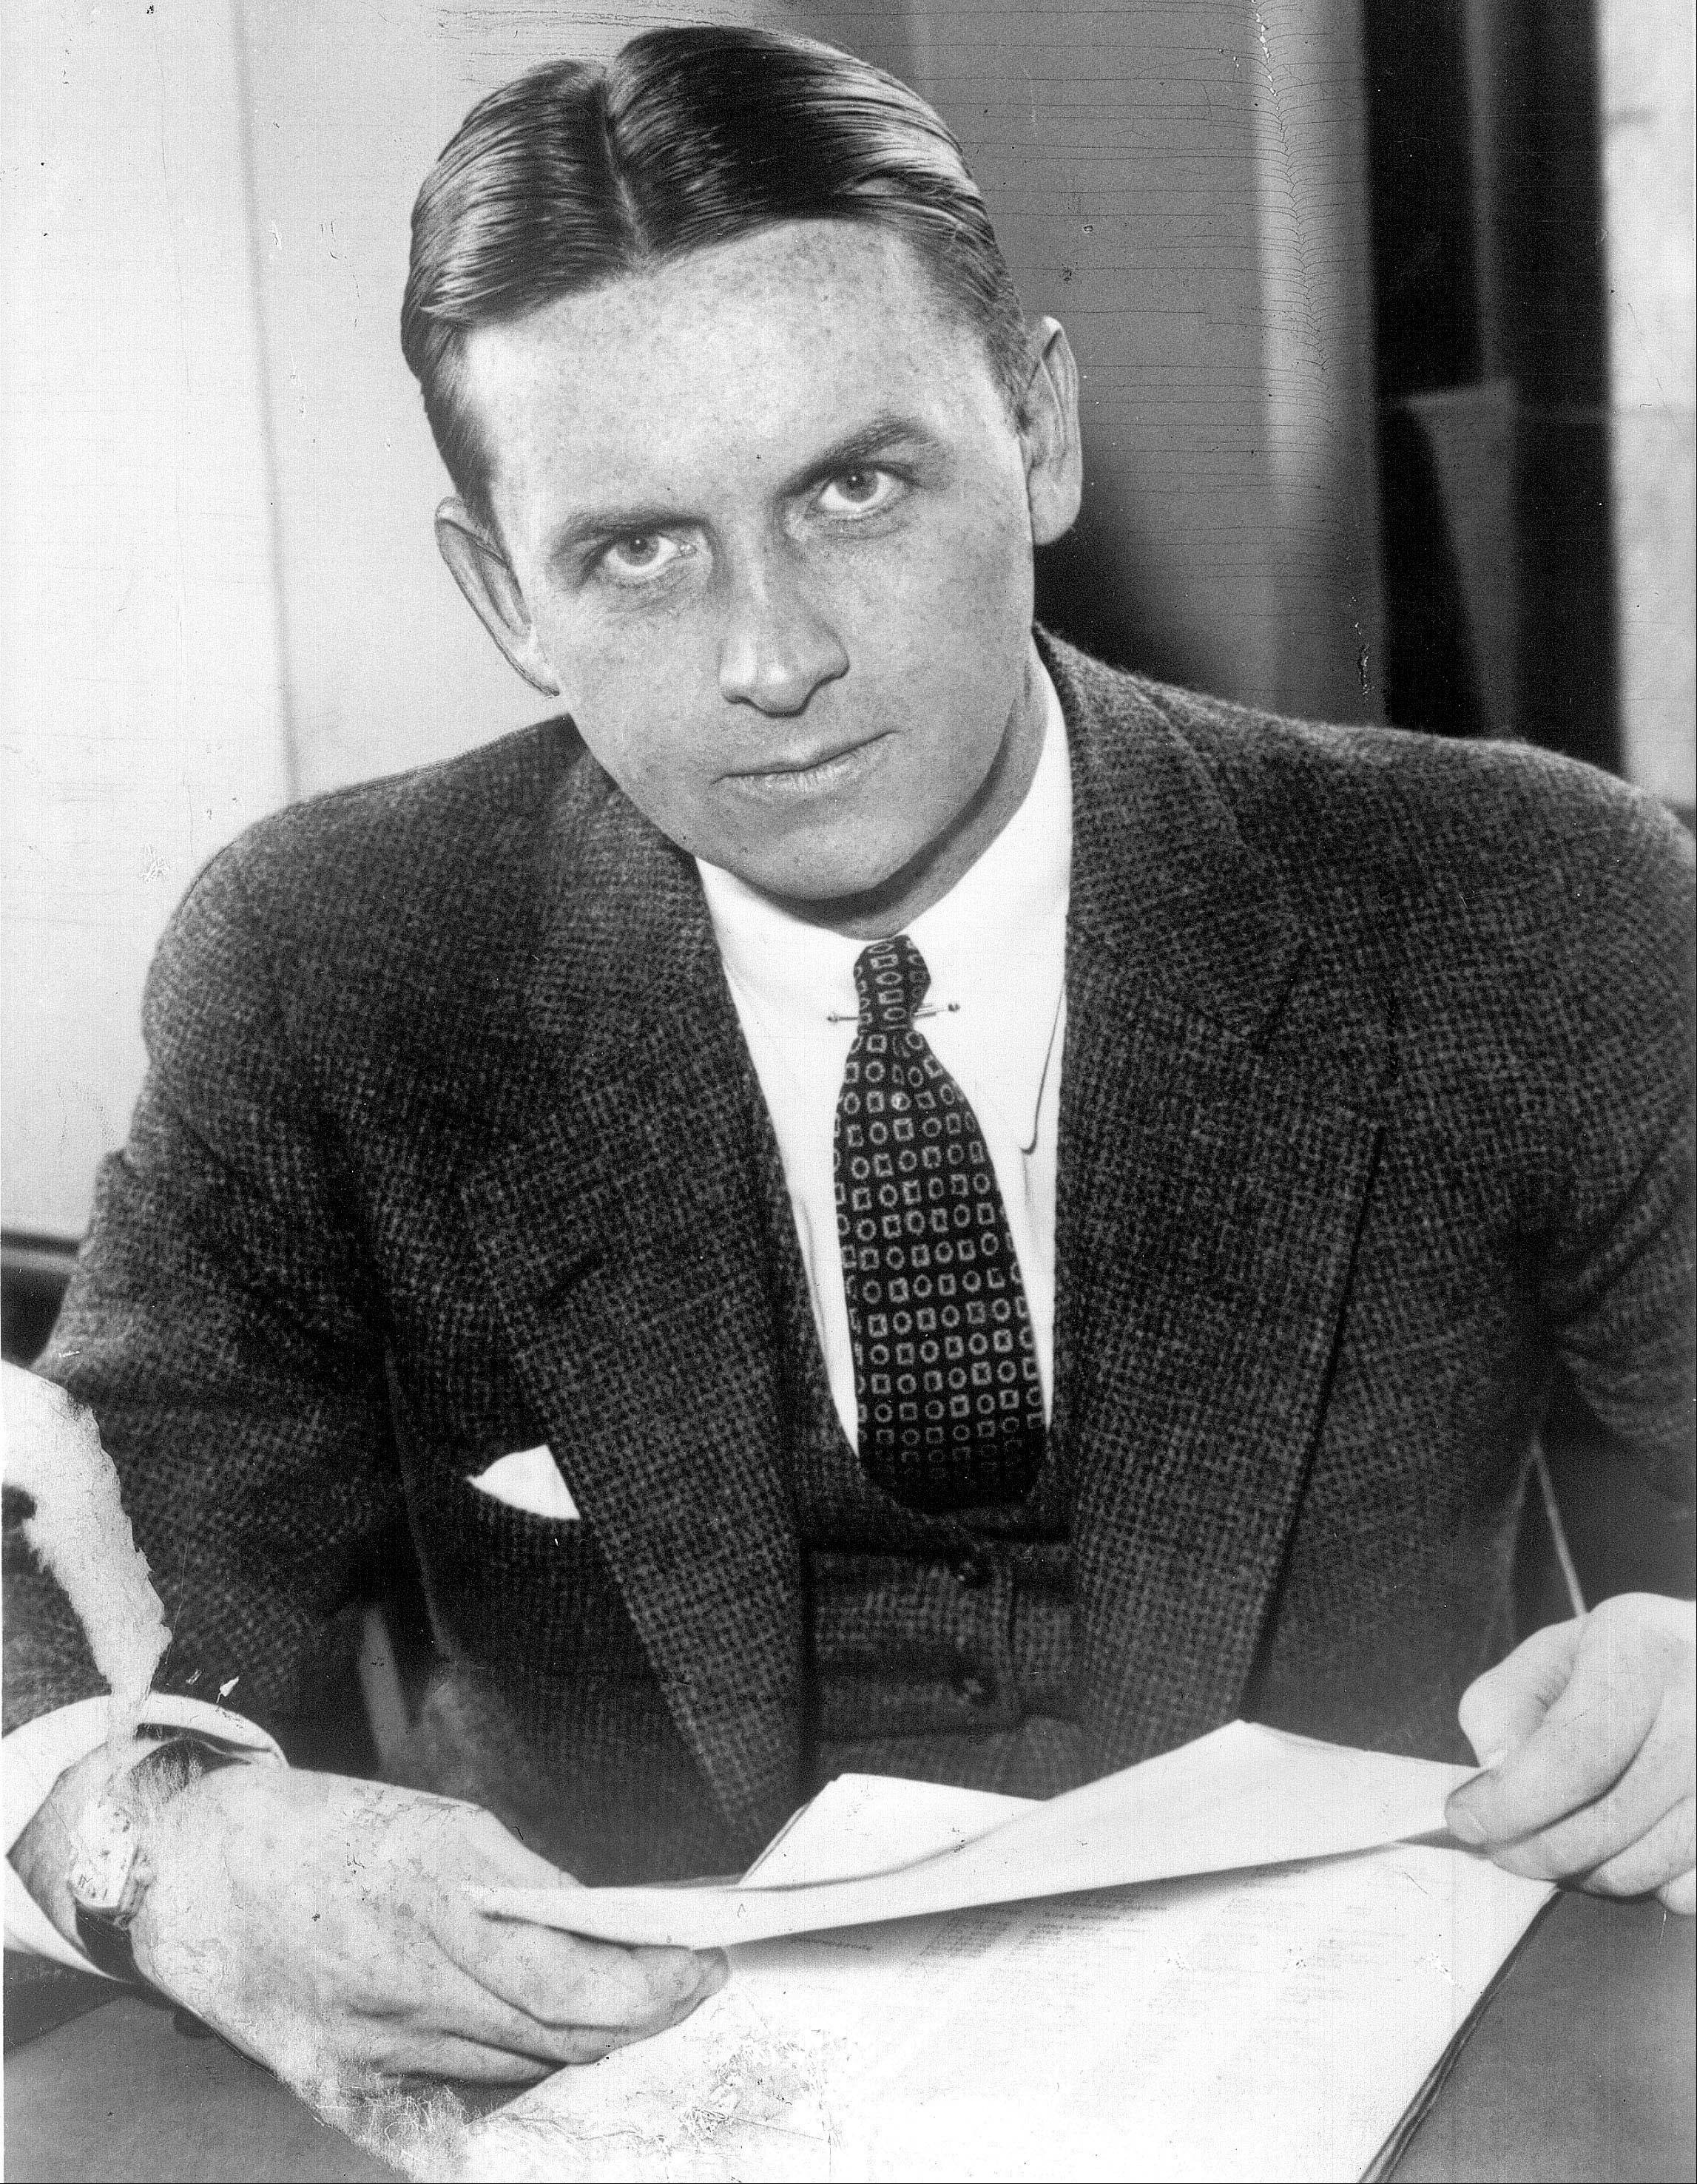 This undated file photo shows Eliot Ness in Cleveland. Portrayed over the years by Kevin Costner and Robert Stack as an incorruptible hero, Ness' legend is now at risk, with some claiming his role in taking out Chicago mobster Al Capone is as mythical as Mrs. O�Leary's cow starting the Great Chicago Fire.